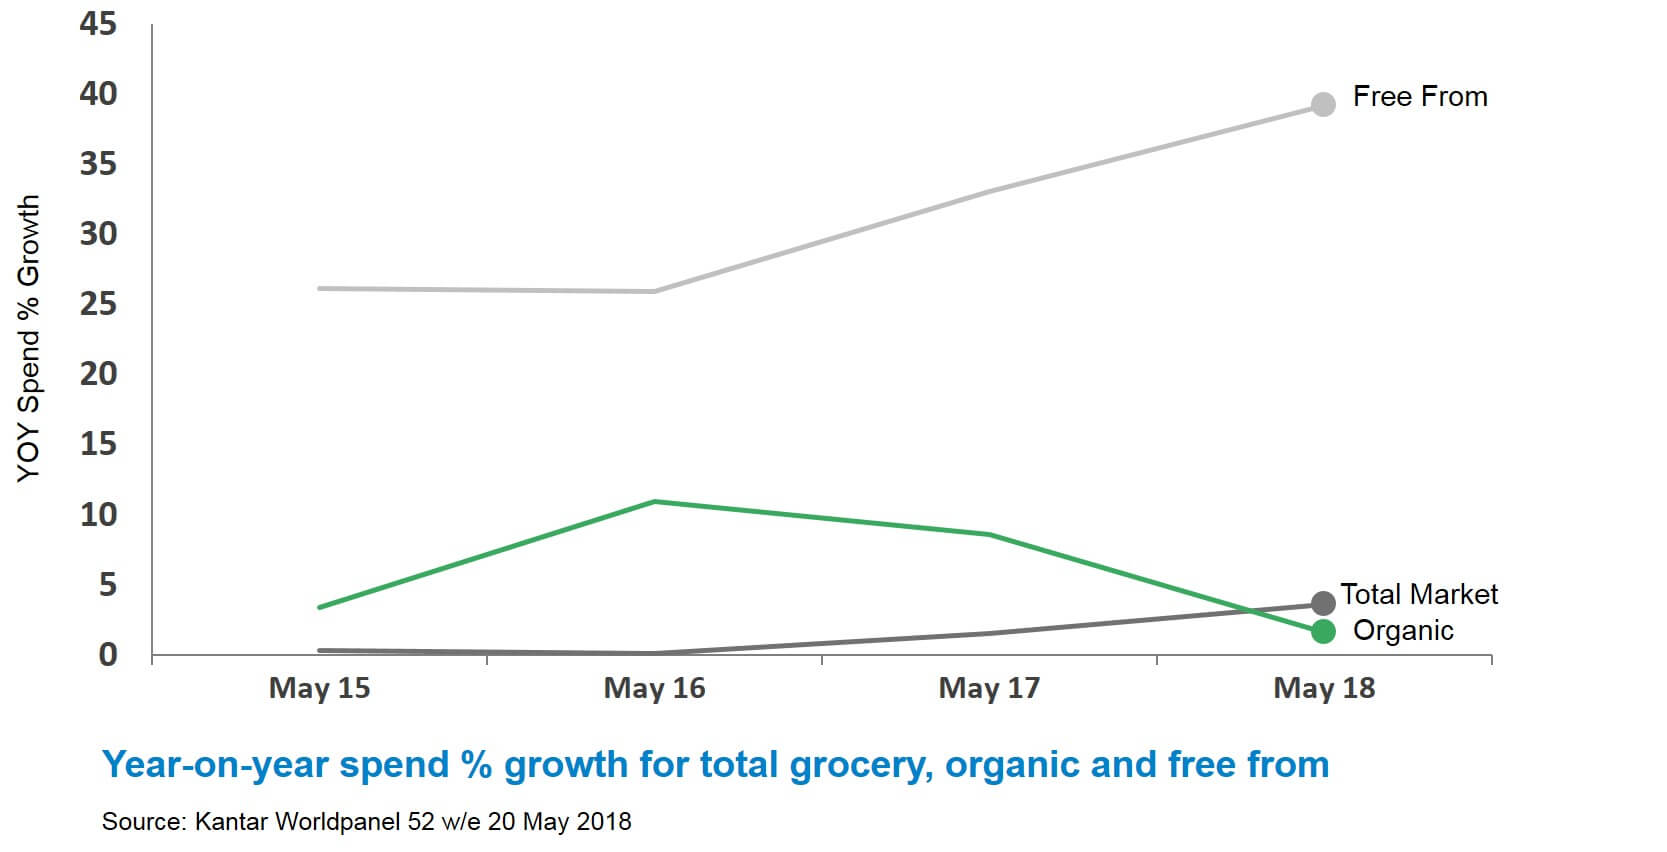 Graph of year-on-year spend percentage growth for total grocery, free from and organic